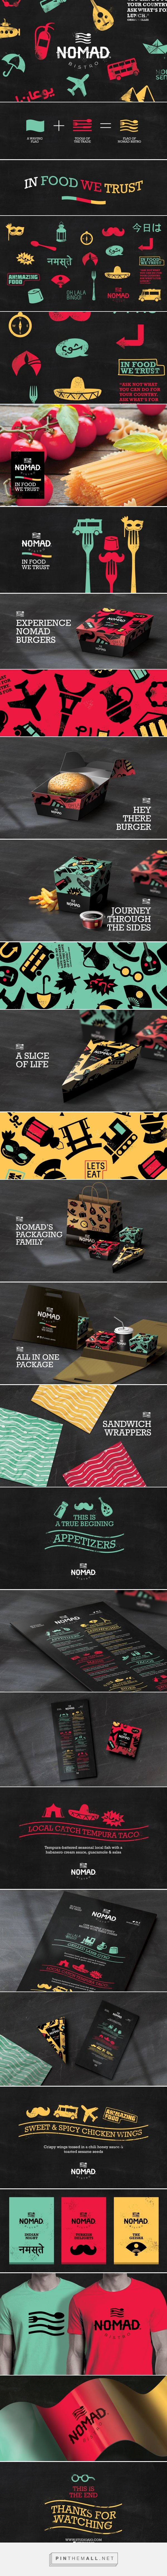 Nomad Bistro Branding by Studio AIO on Behance | Fivestar Branding – Design and Branding Agency & Inspiration Gallery